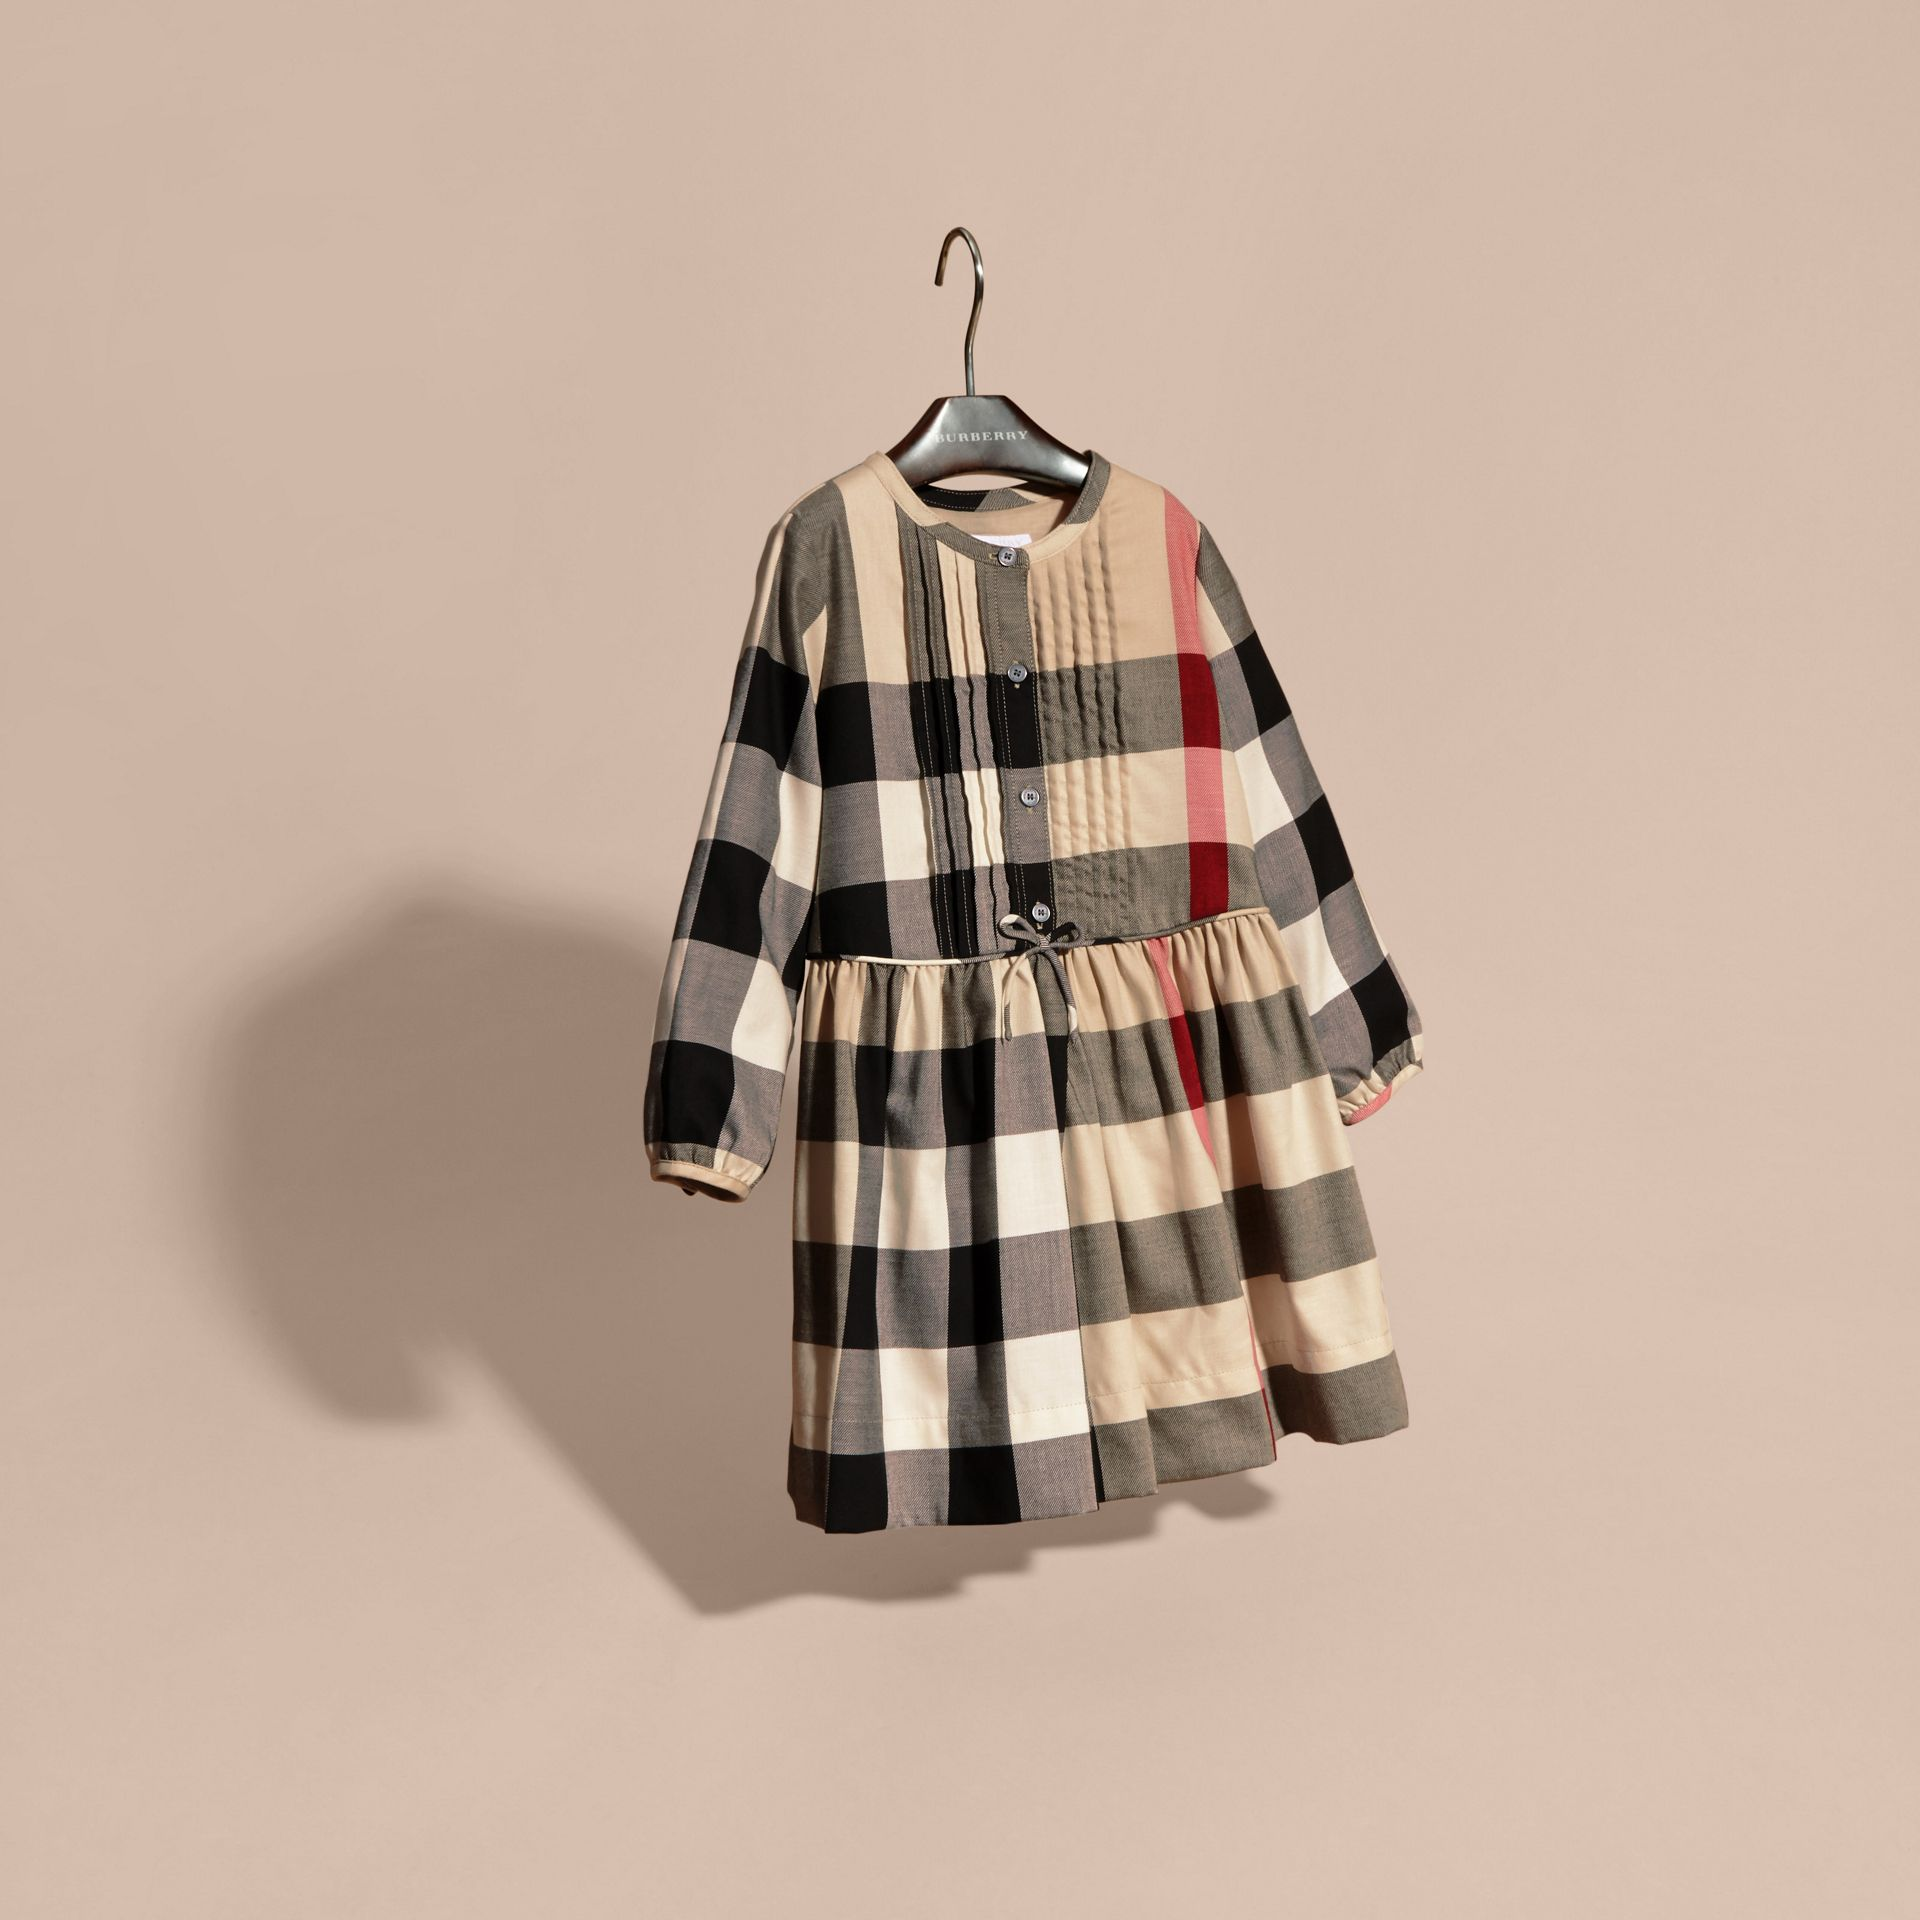 New classic check Check Pintuck Detail Cotton Dress - gallery image 3